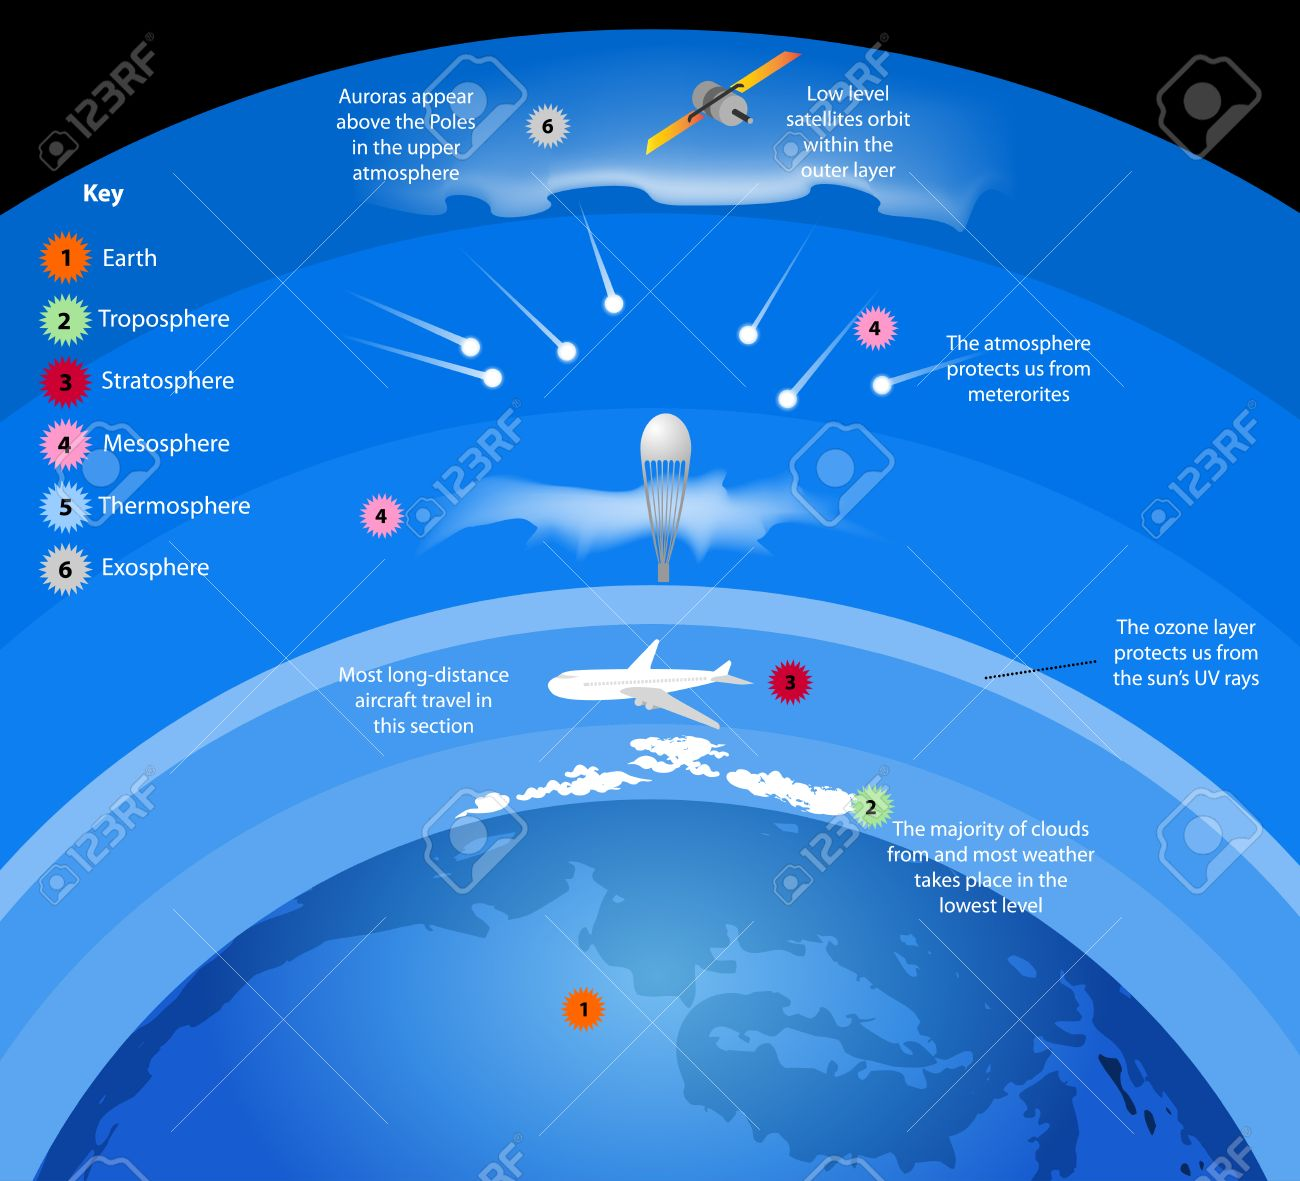 Diagram of earths atmosphere layers wiring data atmosphere layers gases surround earth nature background royalty diagram of earths atmosphere layers diagram of earths atmosphere layers ccuart Image collections